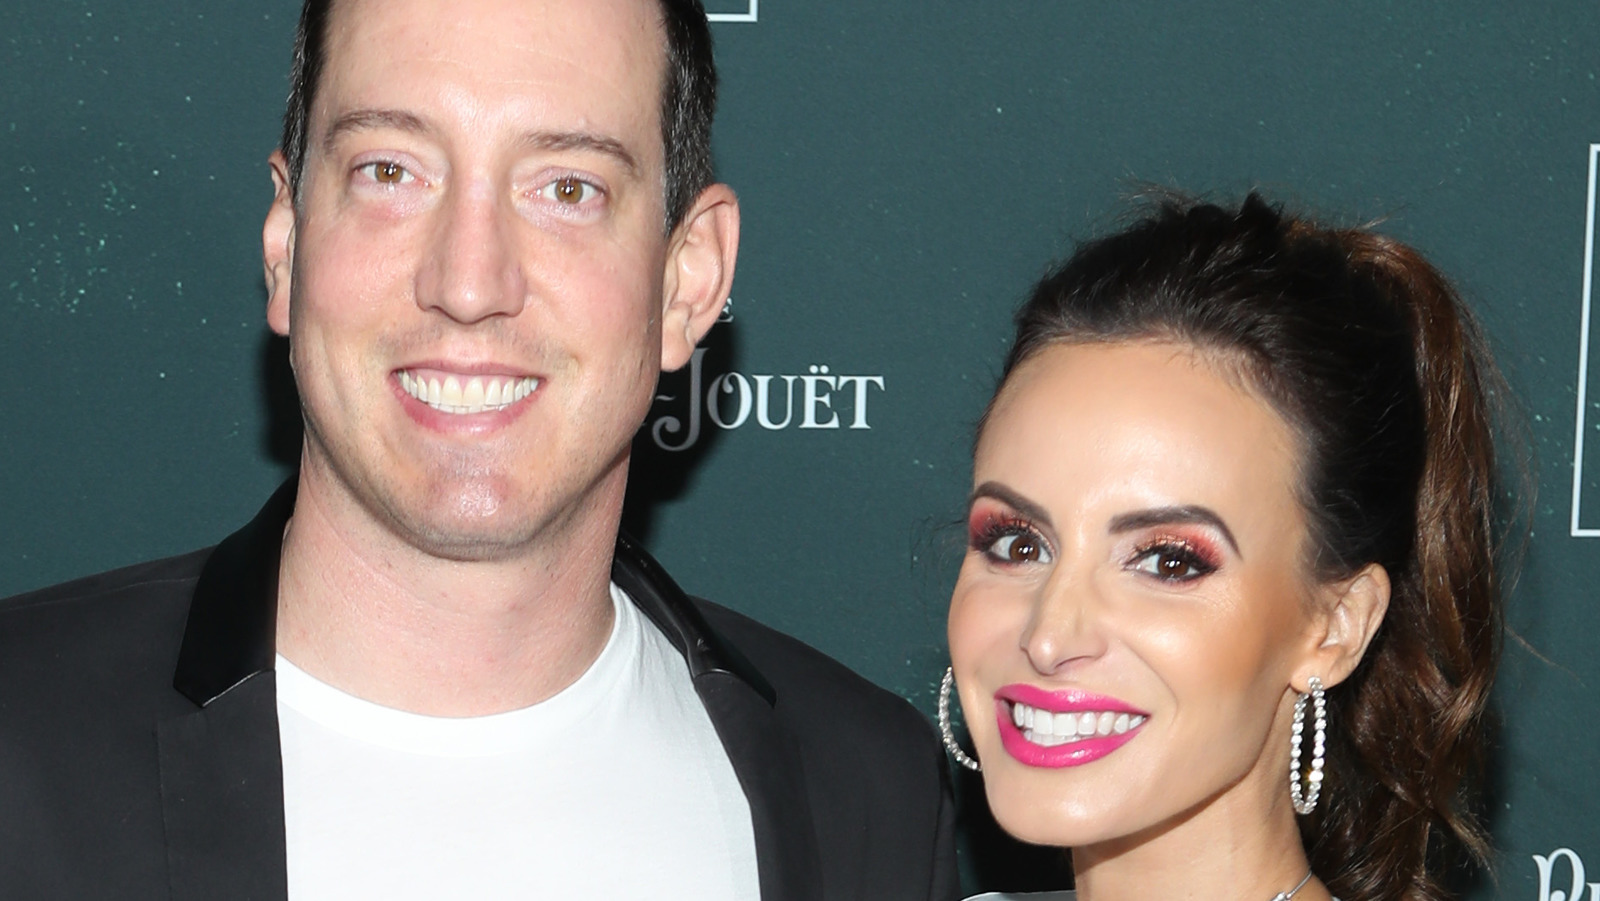 The Truth About Kyle Busch's Wife